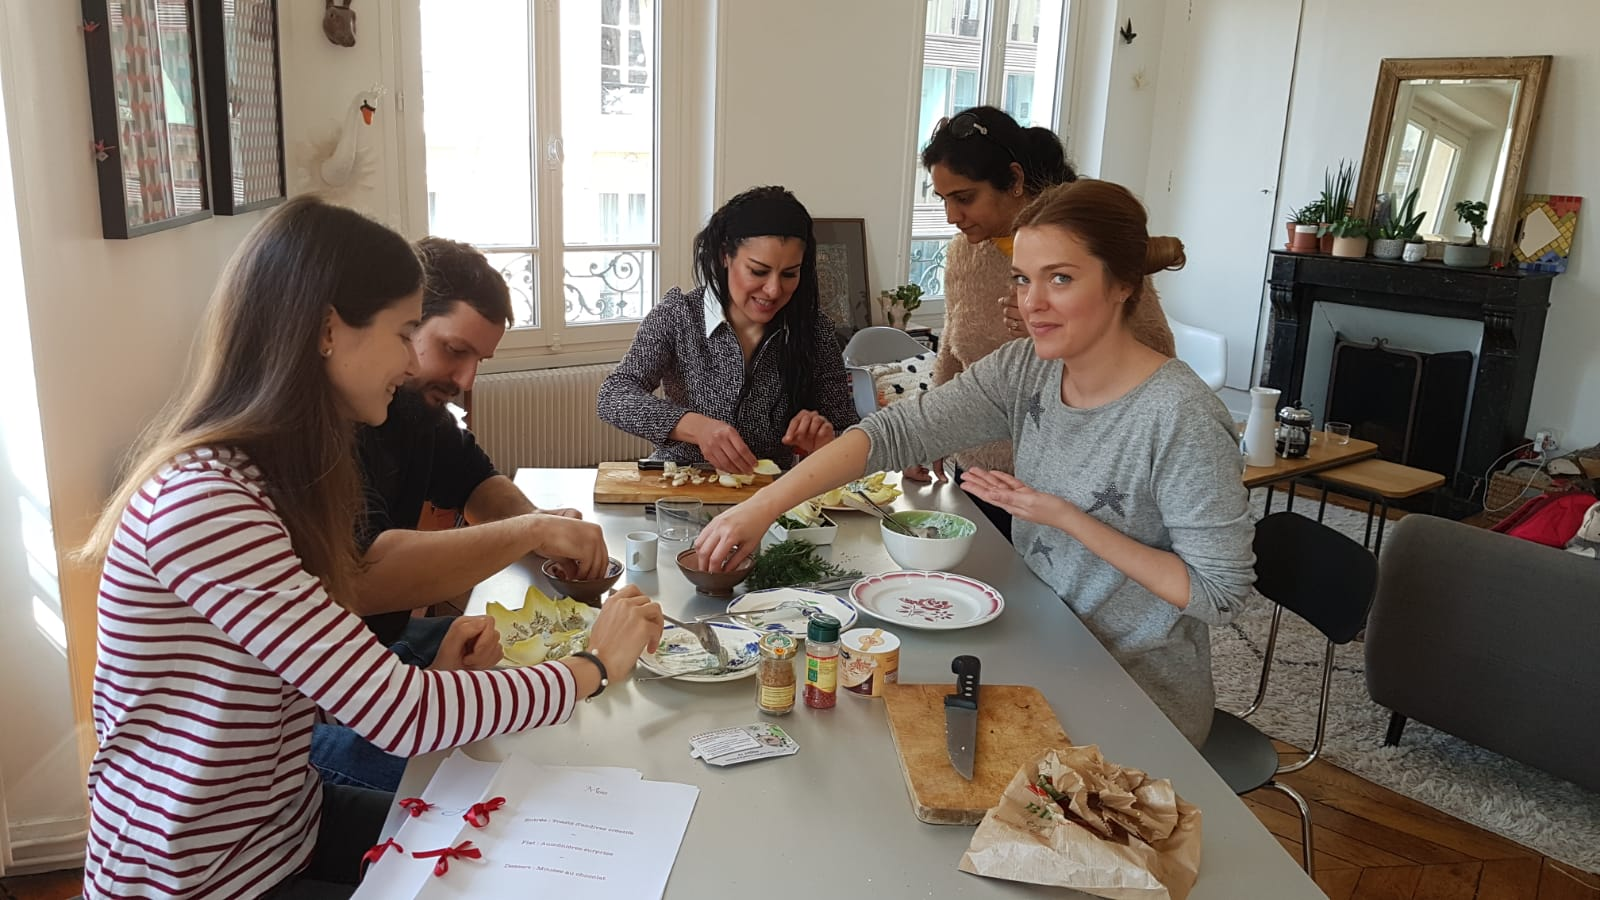 Cooking class learn French expatriates expat spouses New language with experimentes teacher